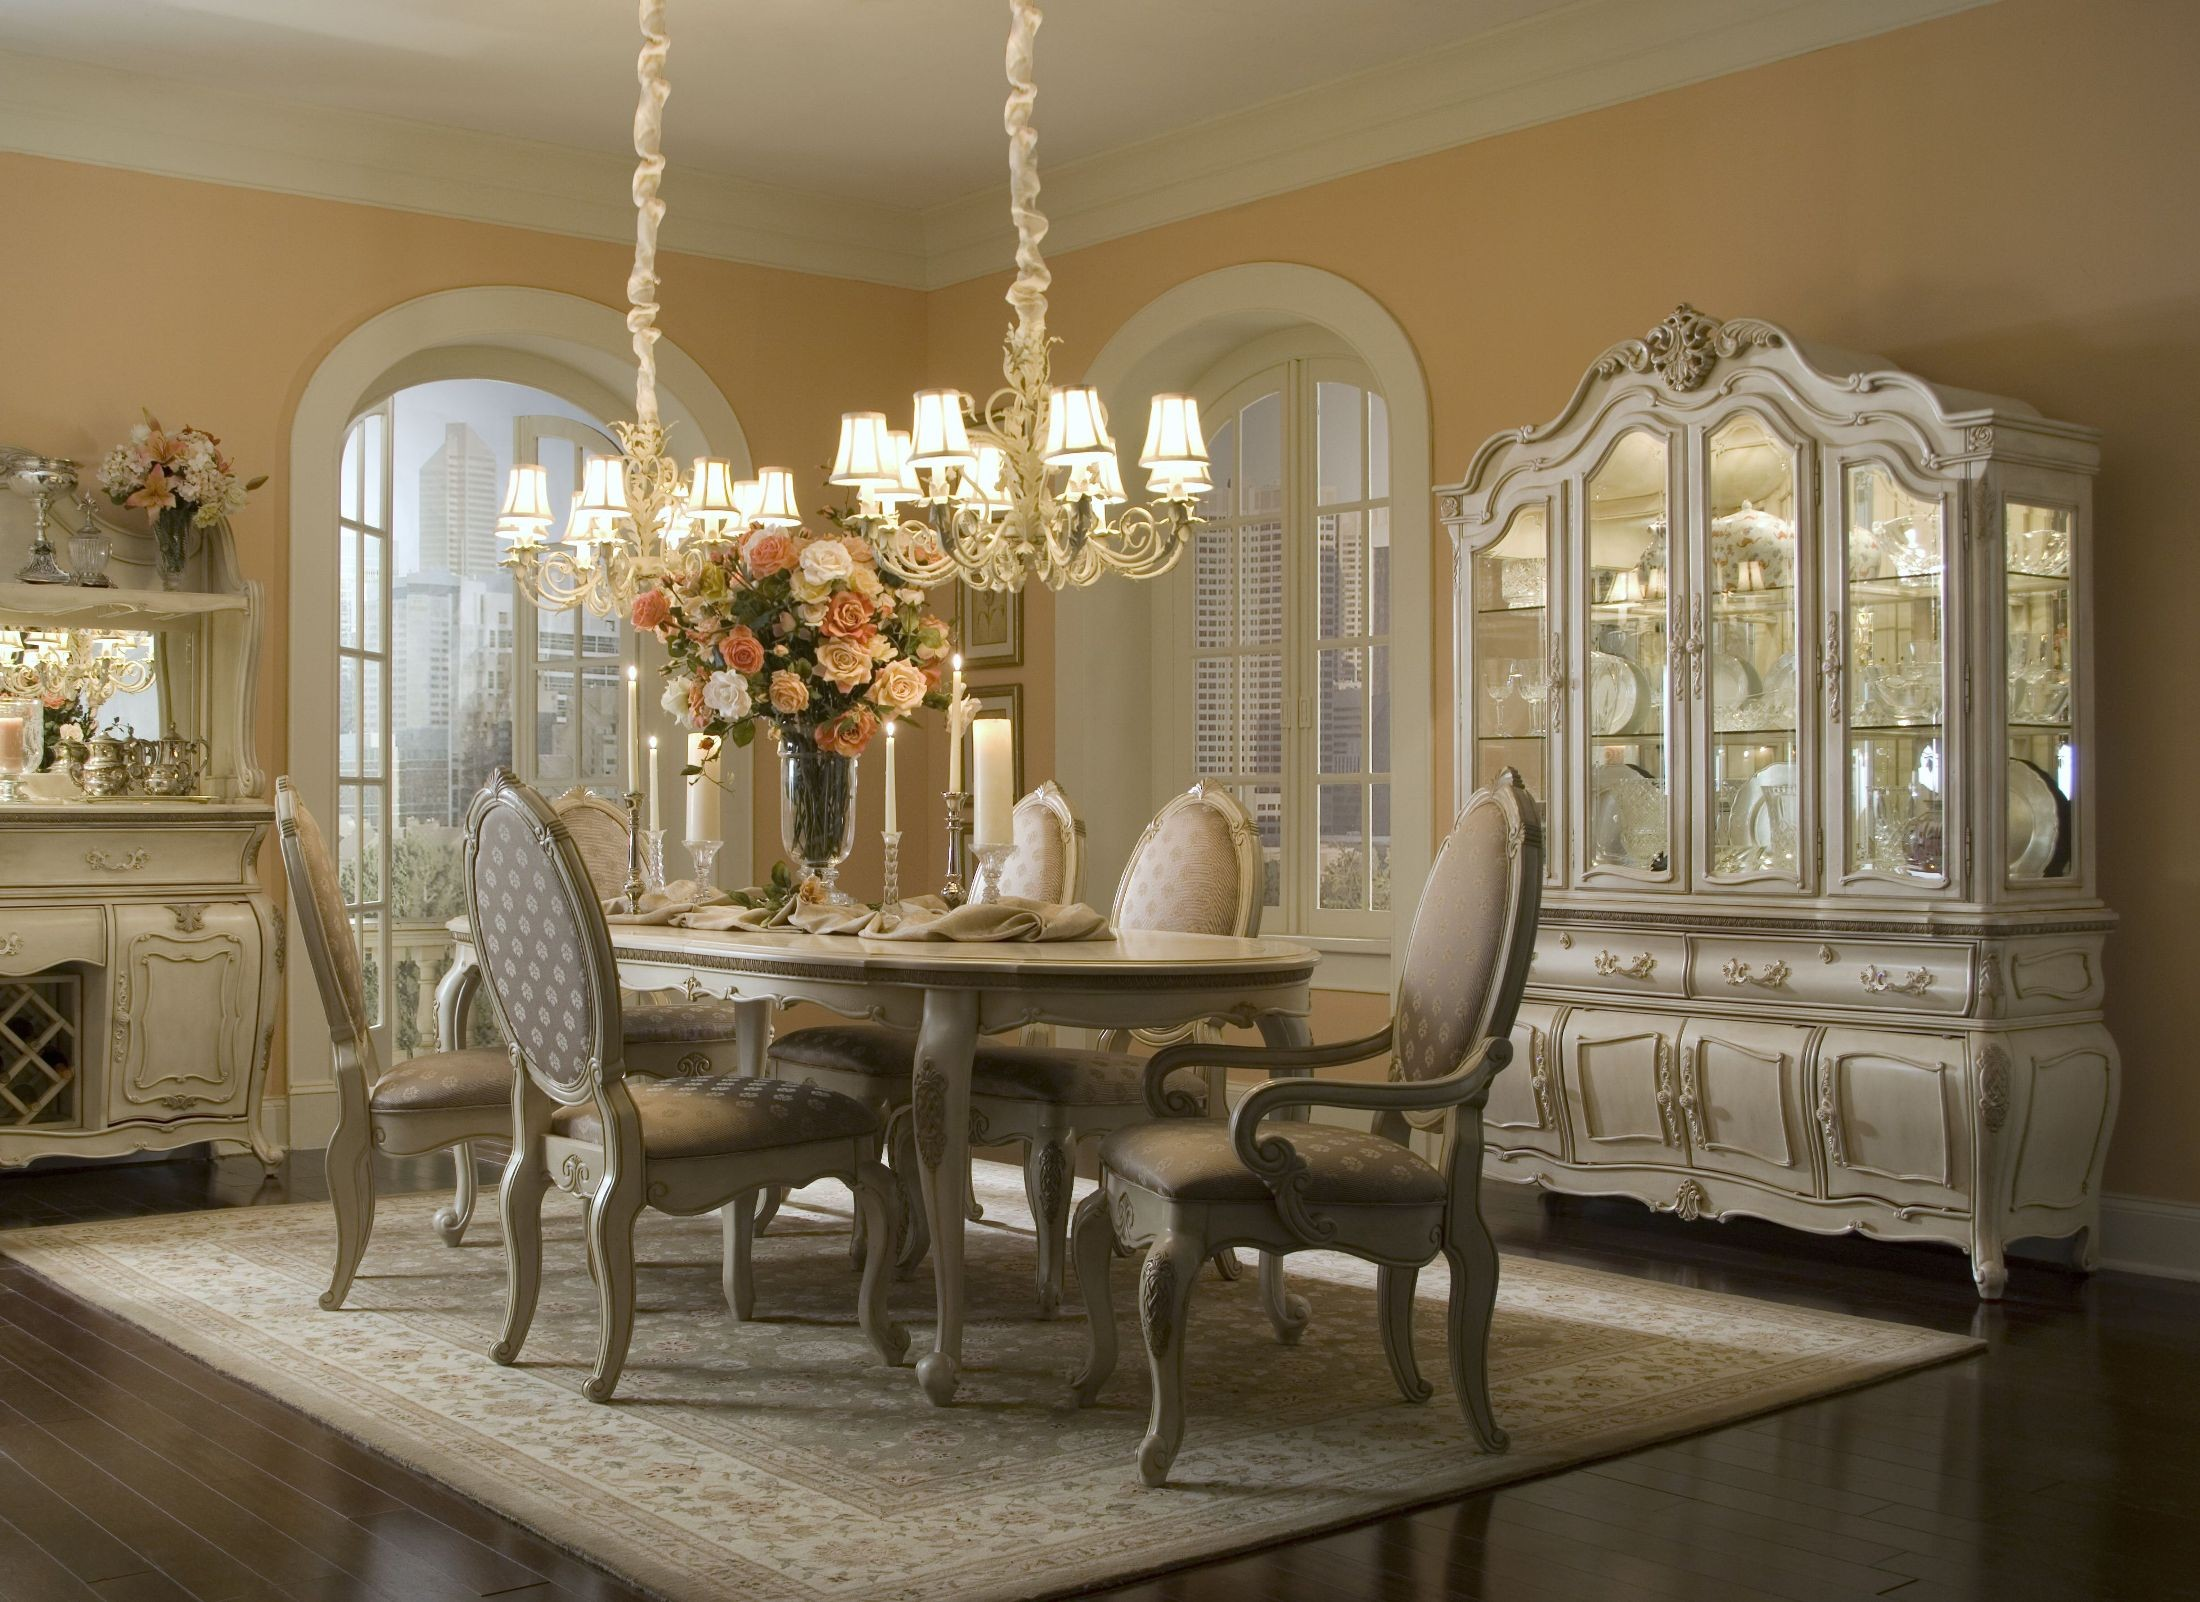 lavelle blanc oval dining room set from aico 54000 kingston plantation oval table formal dining room set